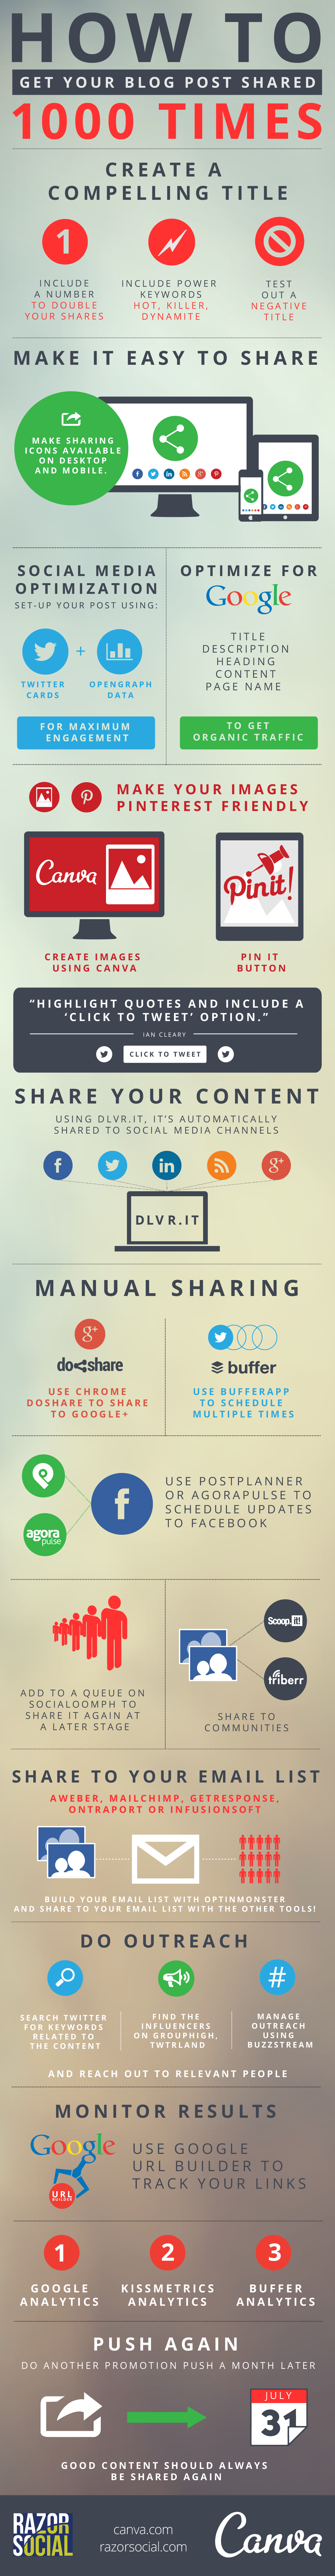 Blog Sharing Infographic